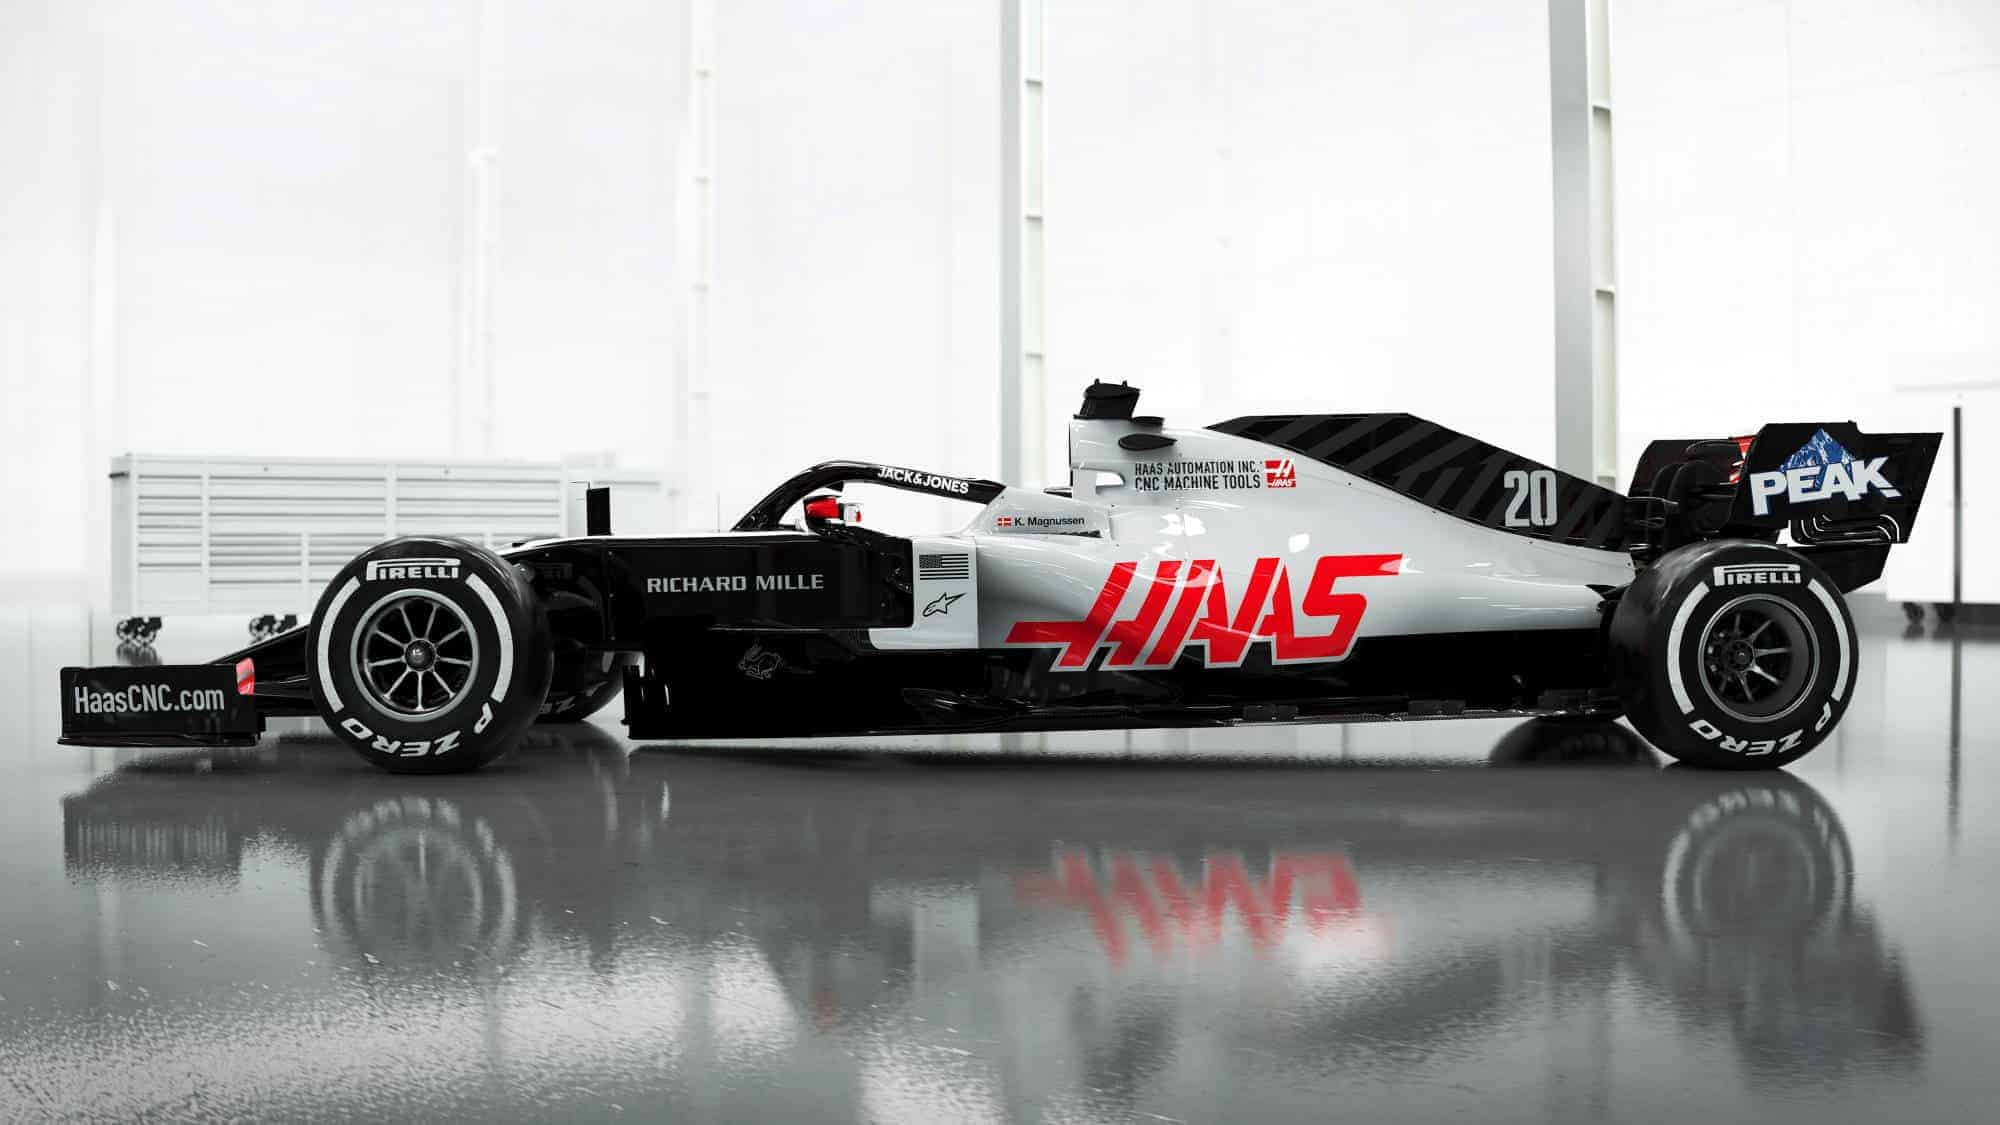 Haas VF20 F1 2020 car left side Photo Haas 2000px